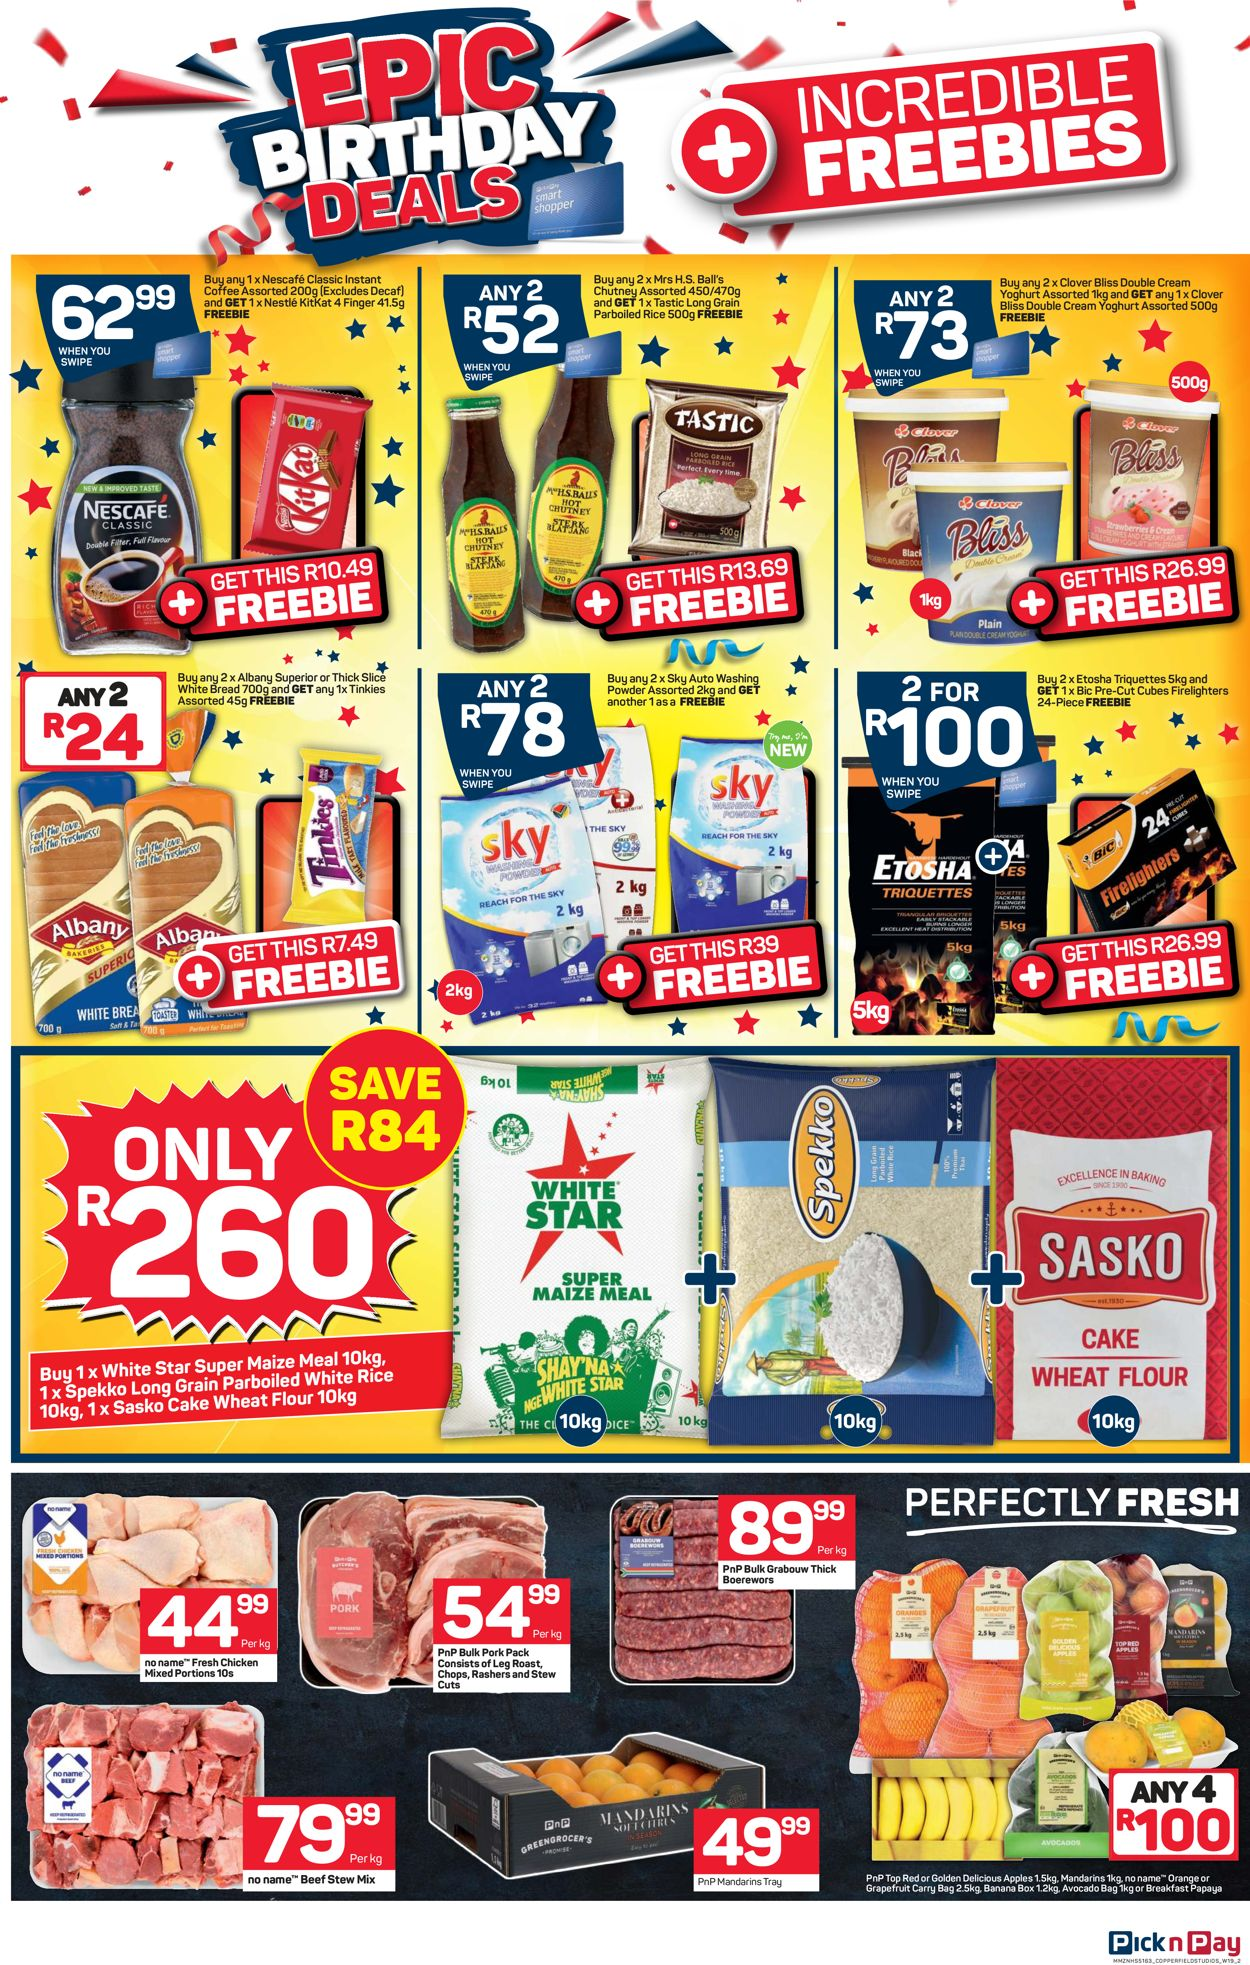 Pick n Pay Catalogue - 2021/07/08-2021/07/11 (Page 2)